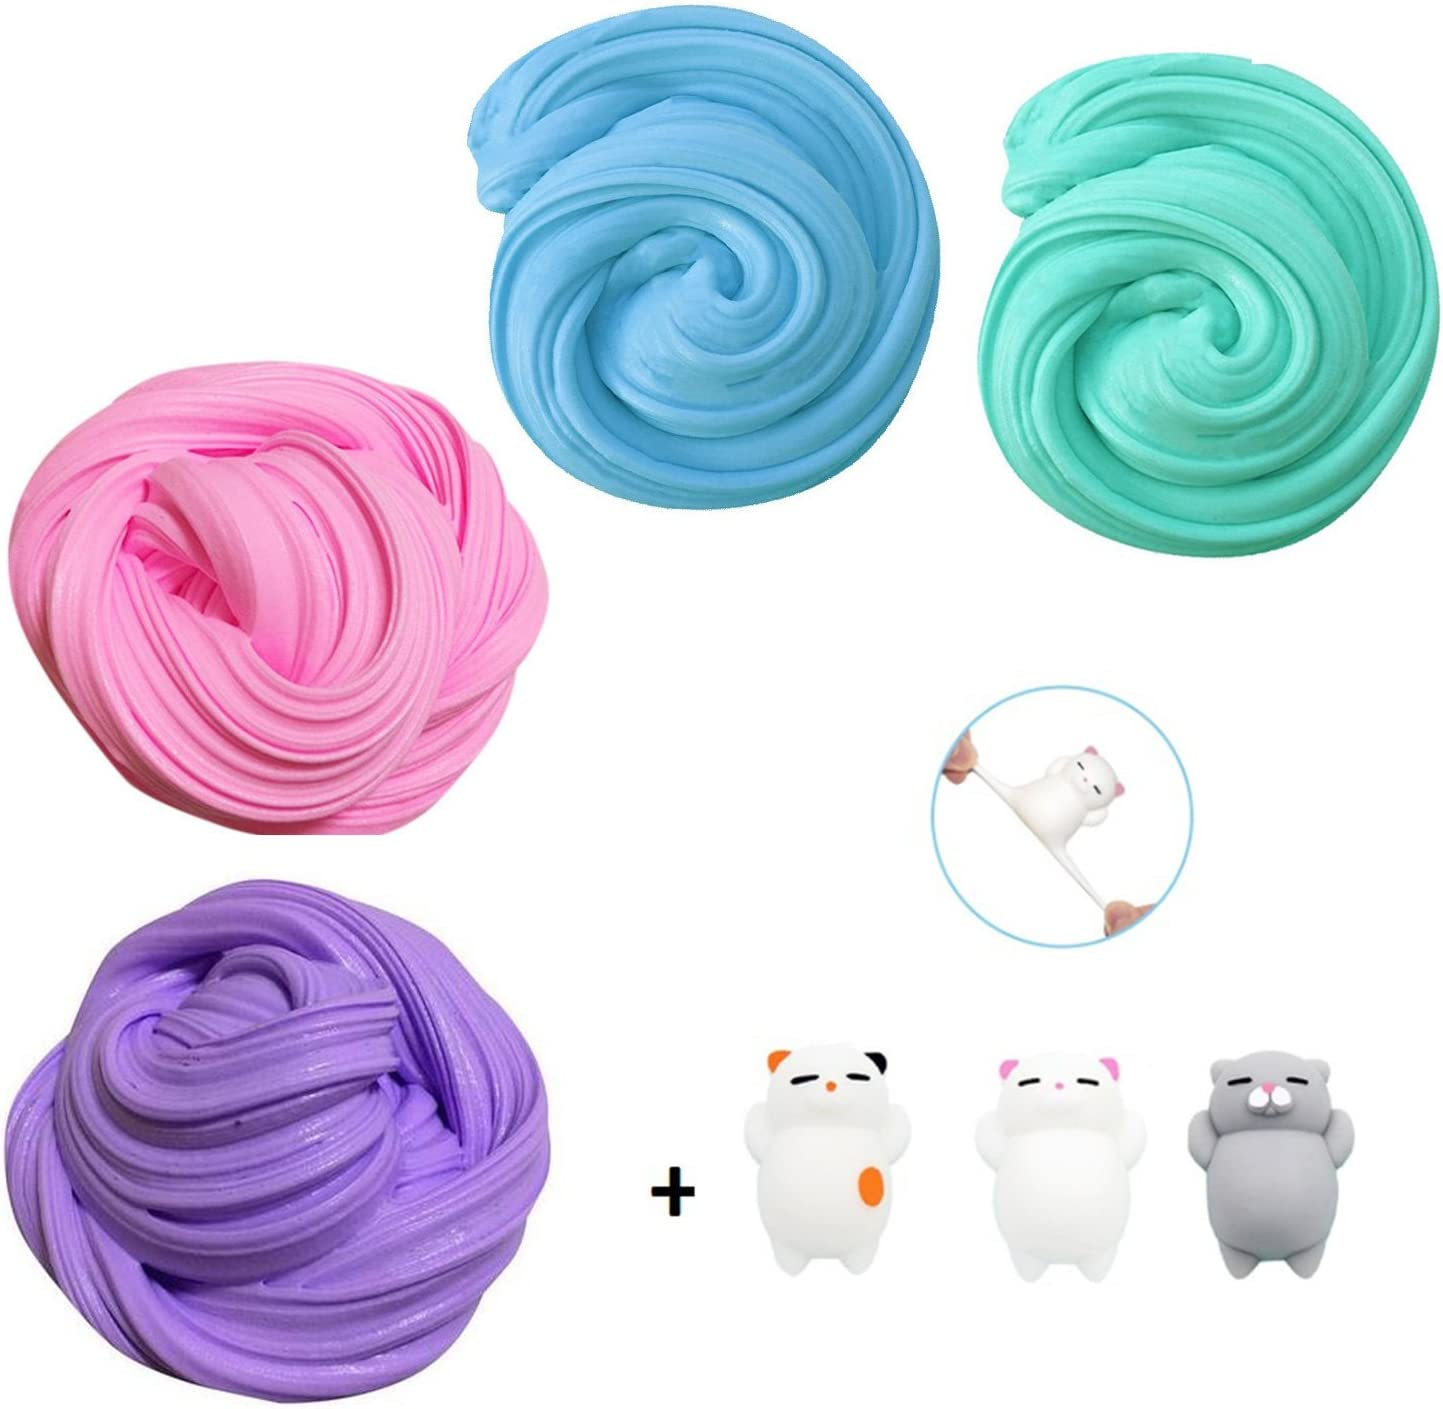 TIME4DEALS Fluffy Slime Kit, 4-Pack Jumbo Floam Slime Kit para ...